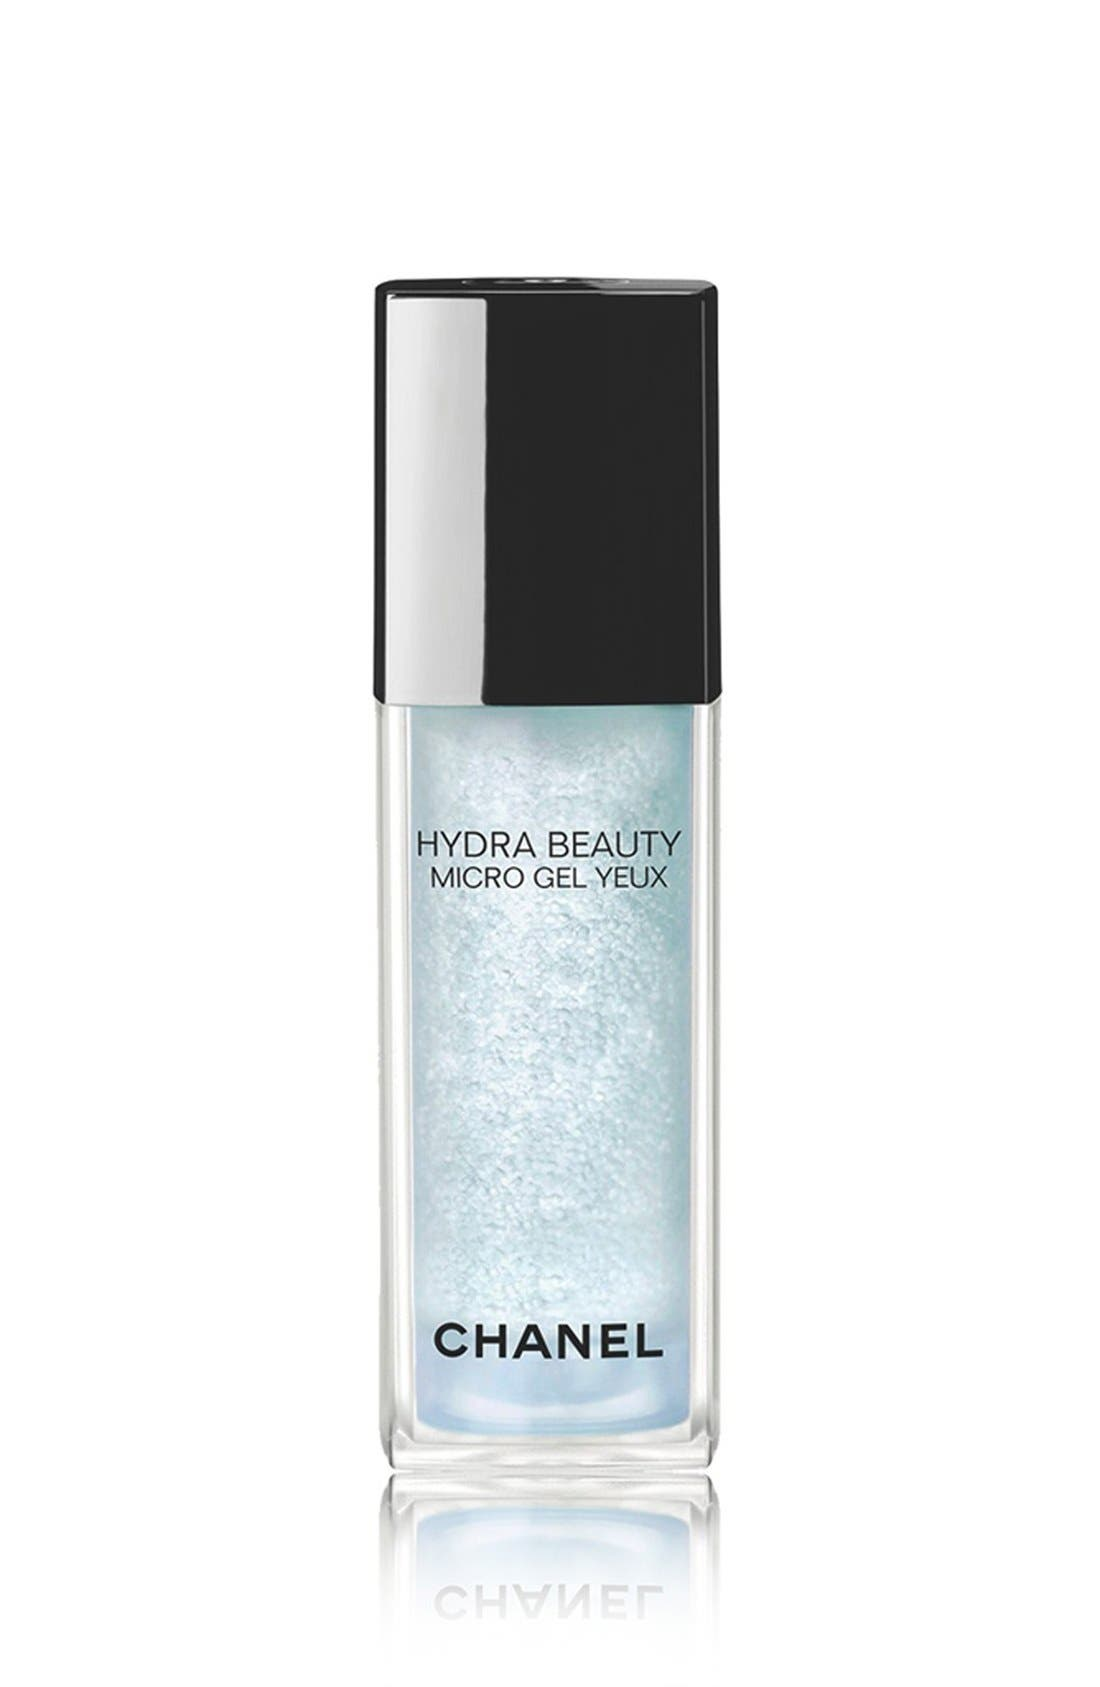 HYDRA BEAUTY MICRO GEL YEUX <br />Intense Smoothing Hydration Eye Gel, Main, color, NO COLOR